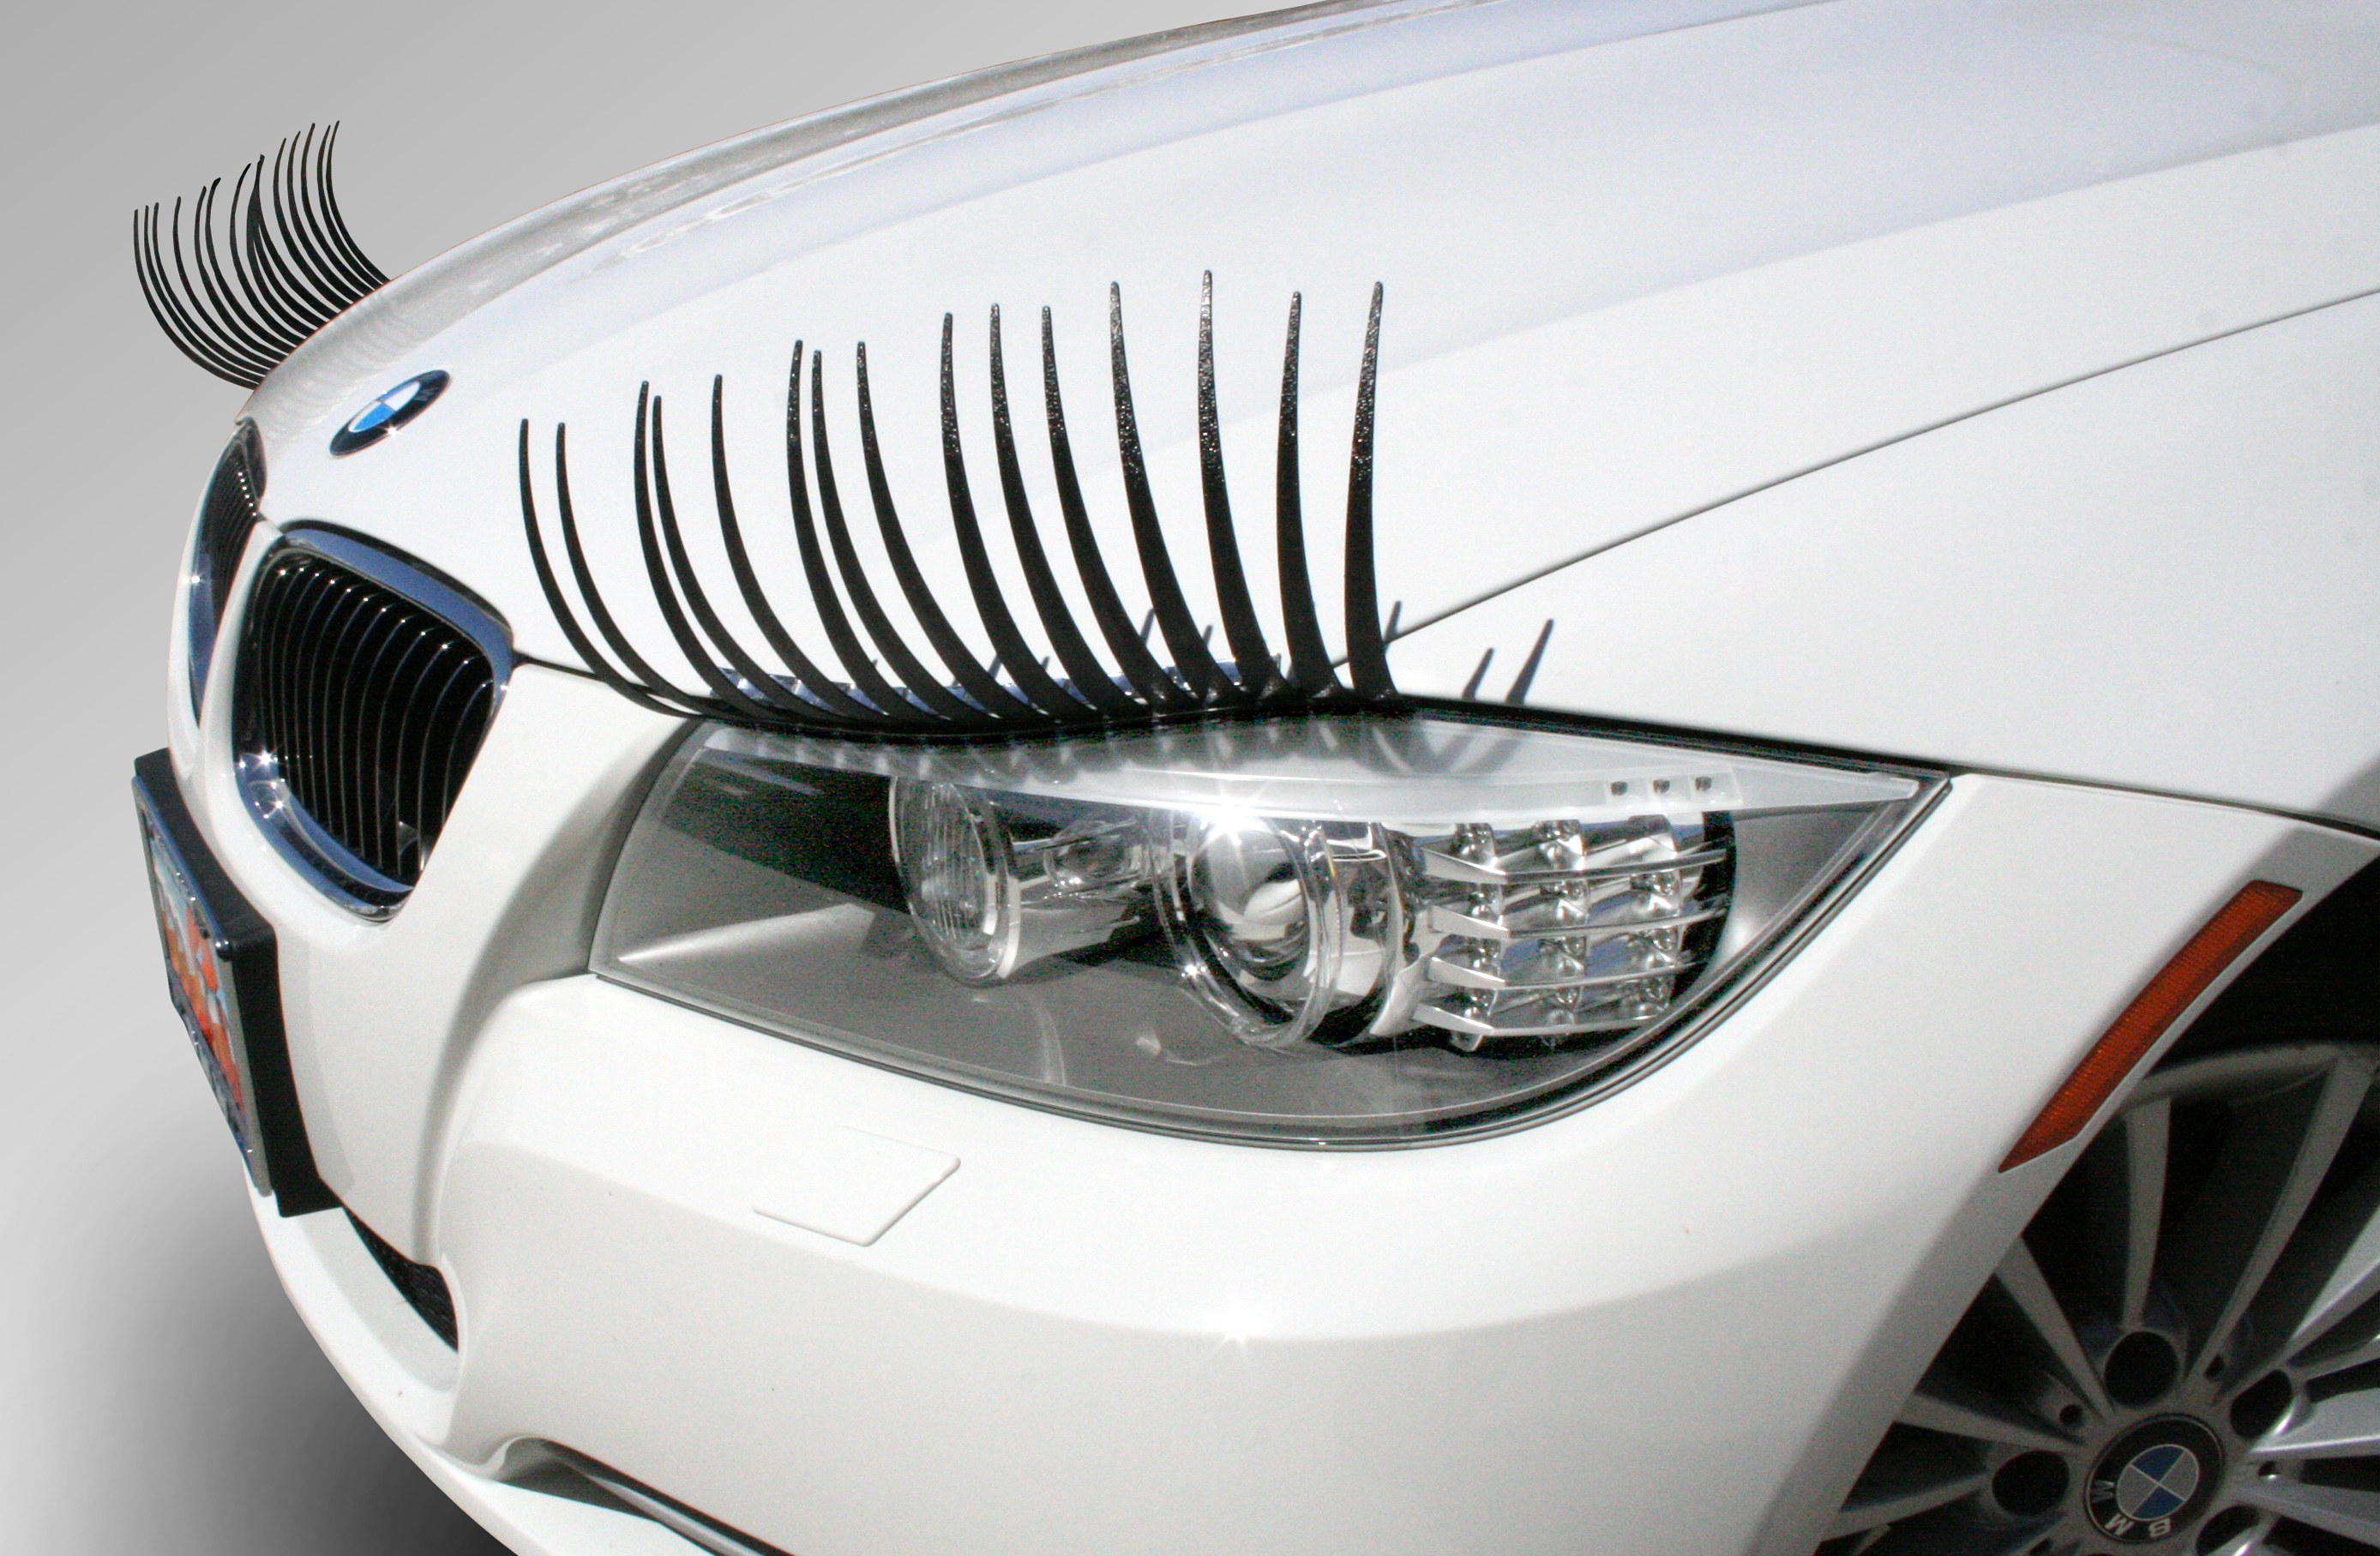 Carlashes Eyelashes For Your Car Hits The Global Market